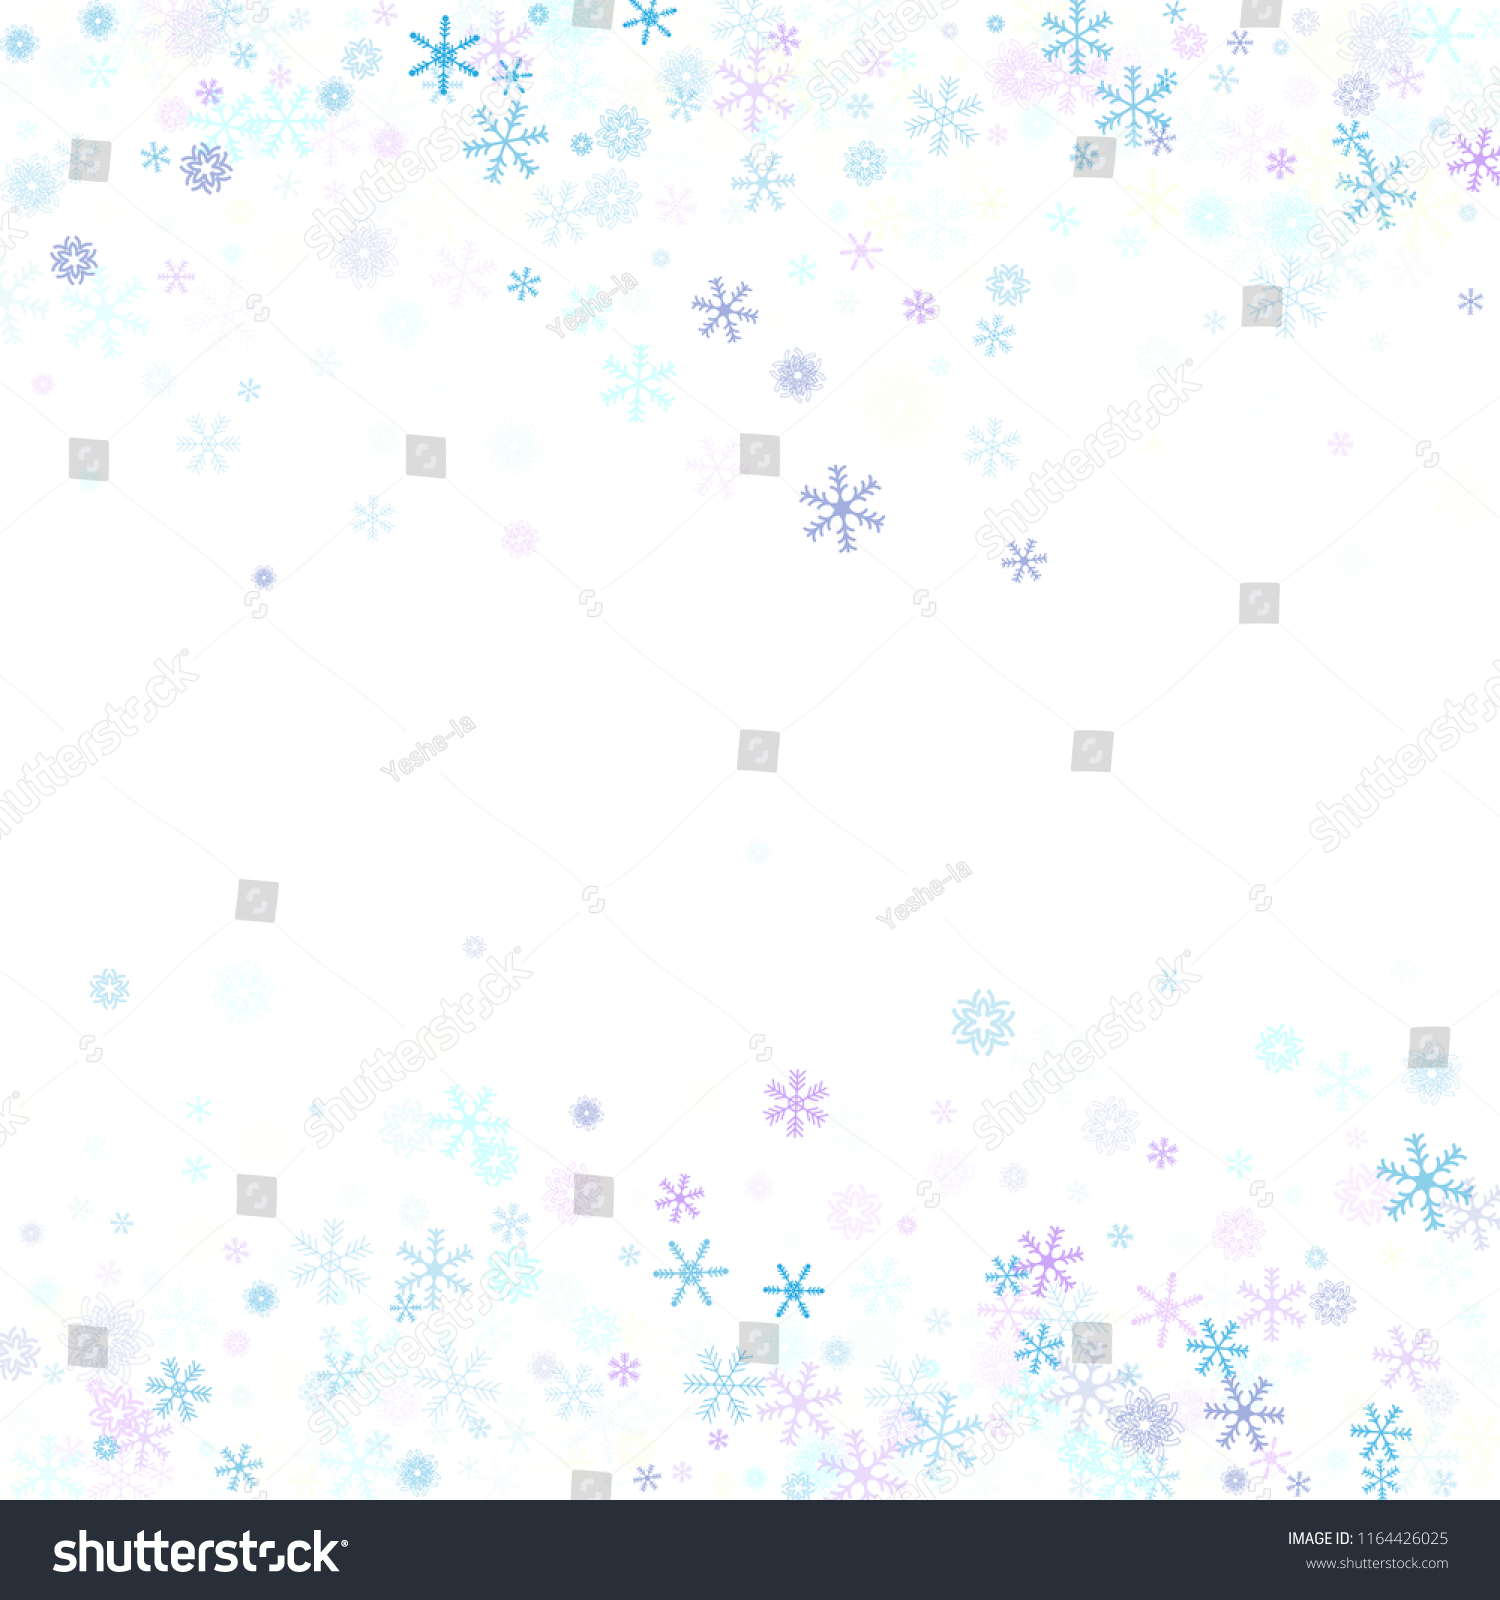 falling snow confetti snowflakes vector border winter holidays christmas new year party